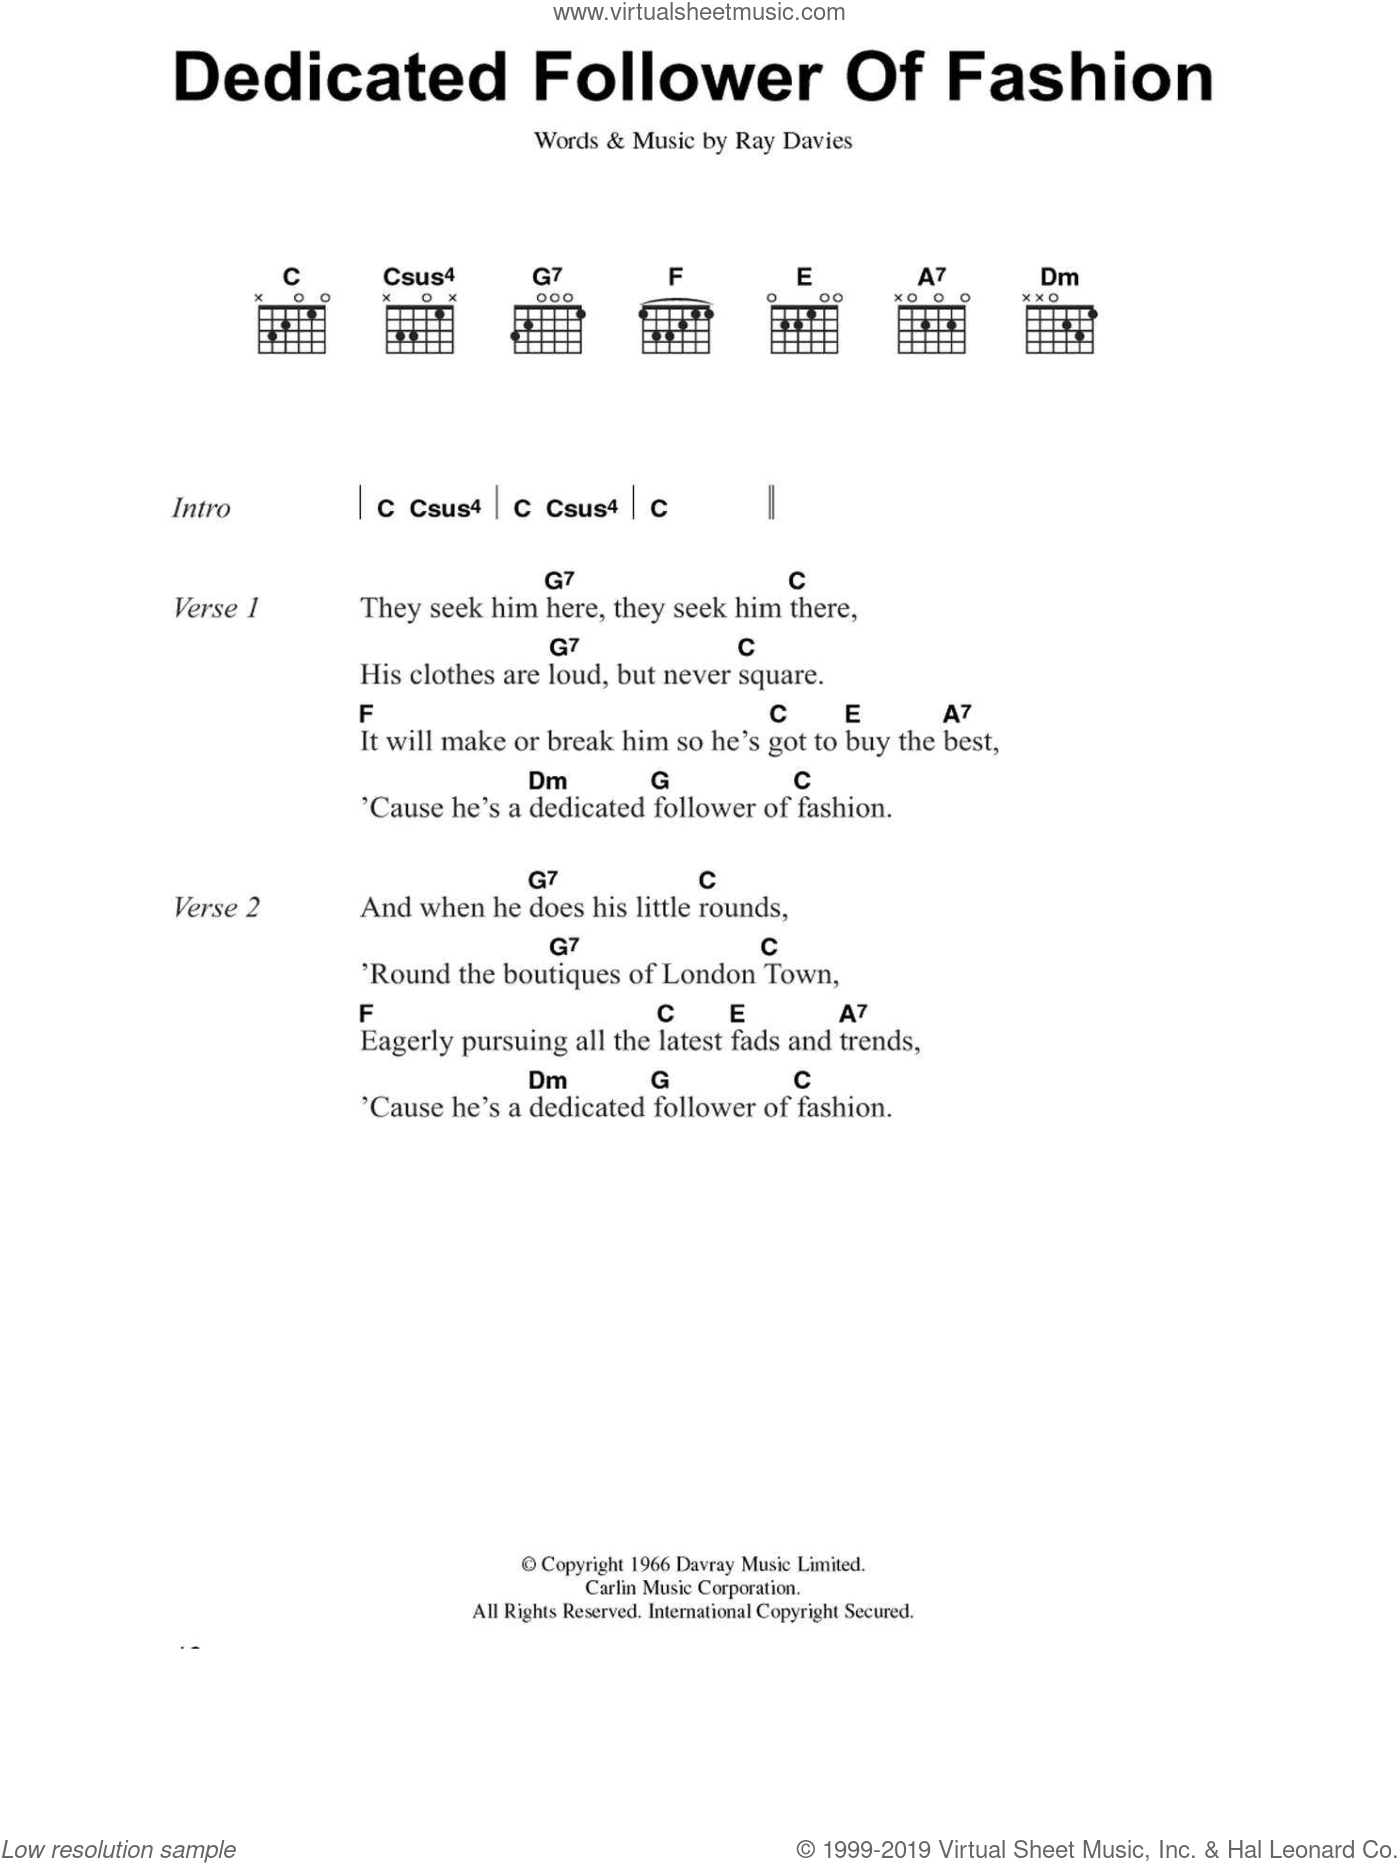 Dedicated Follower Of Fashion sheet music for guitar (chords) by Ray Davies, intermediate skill level